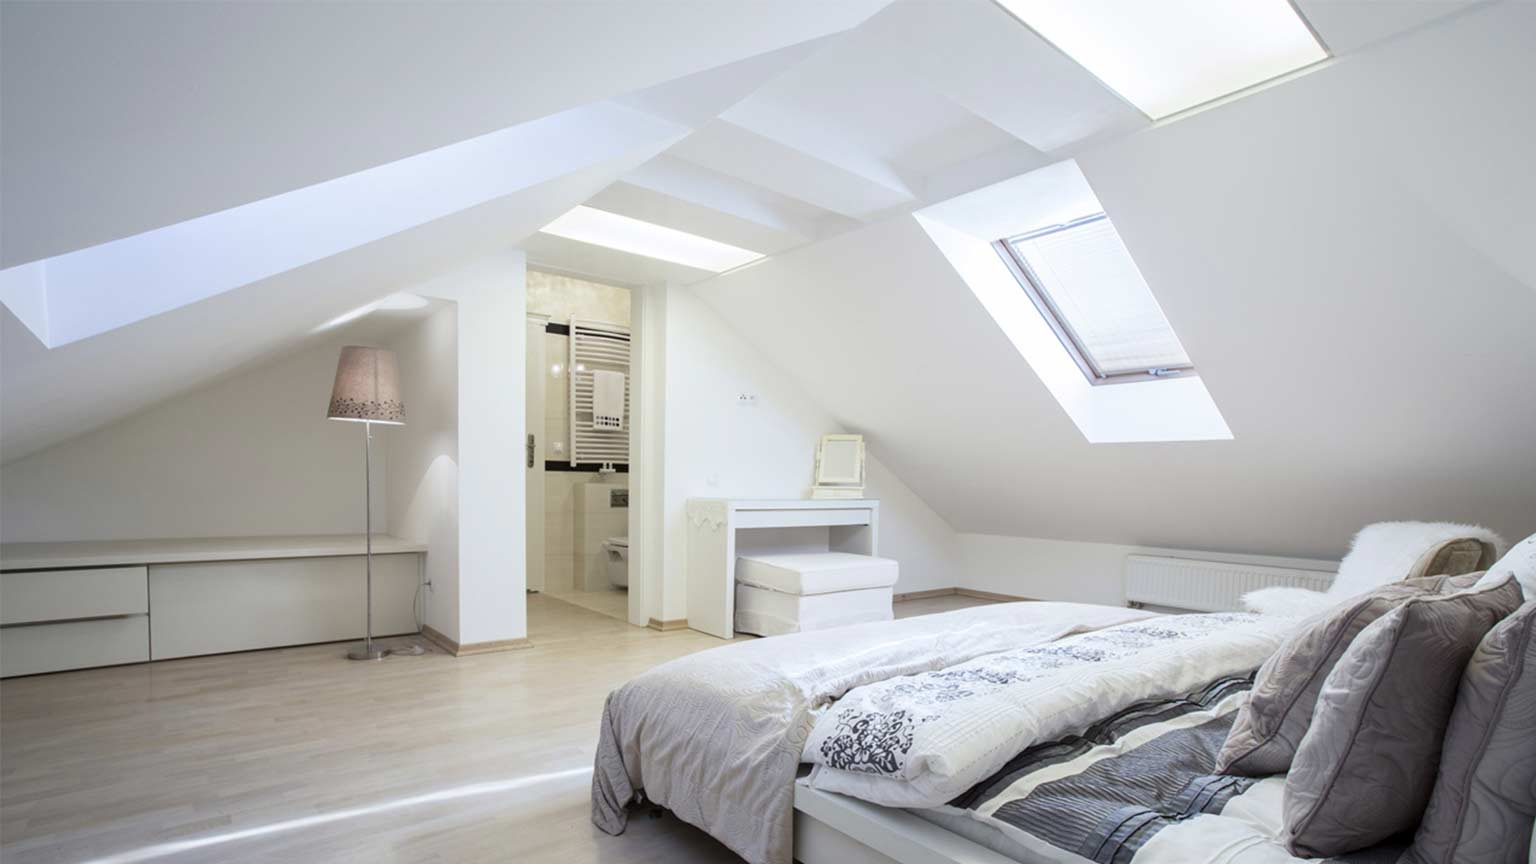 Dorset Loft Conversion offer a premium loft conversion service all over Dorset and Devon including loft conversion Poole.